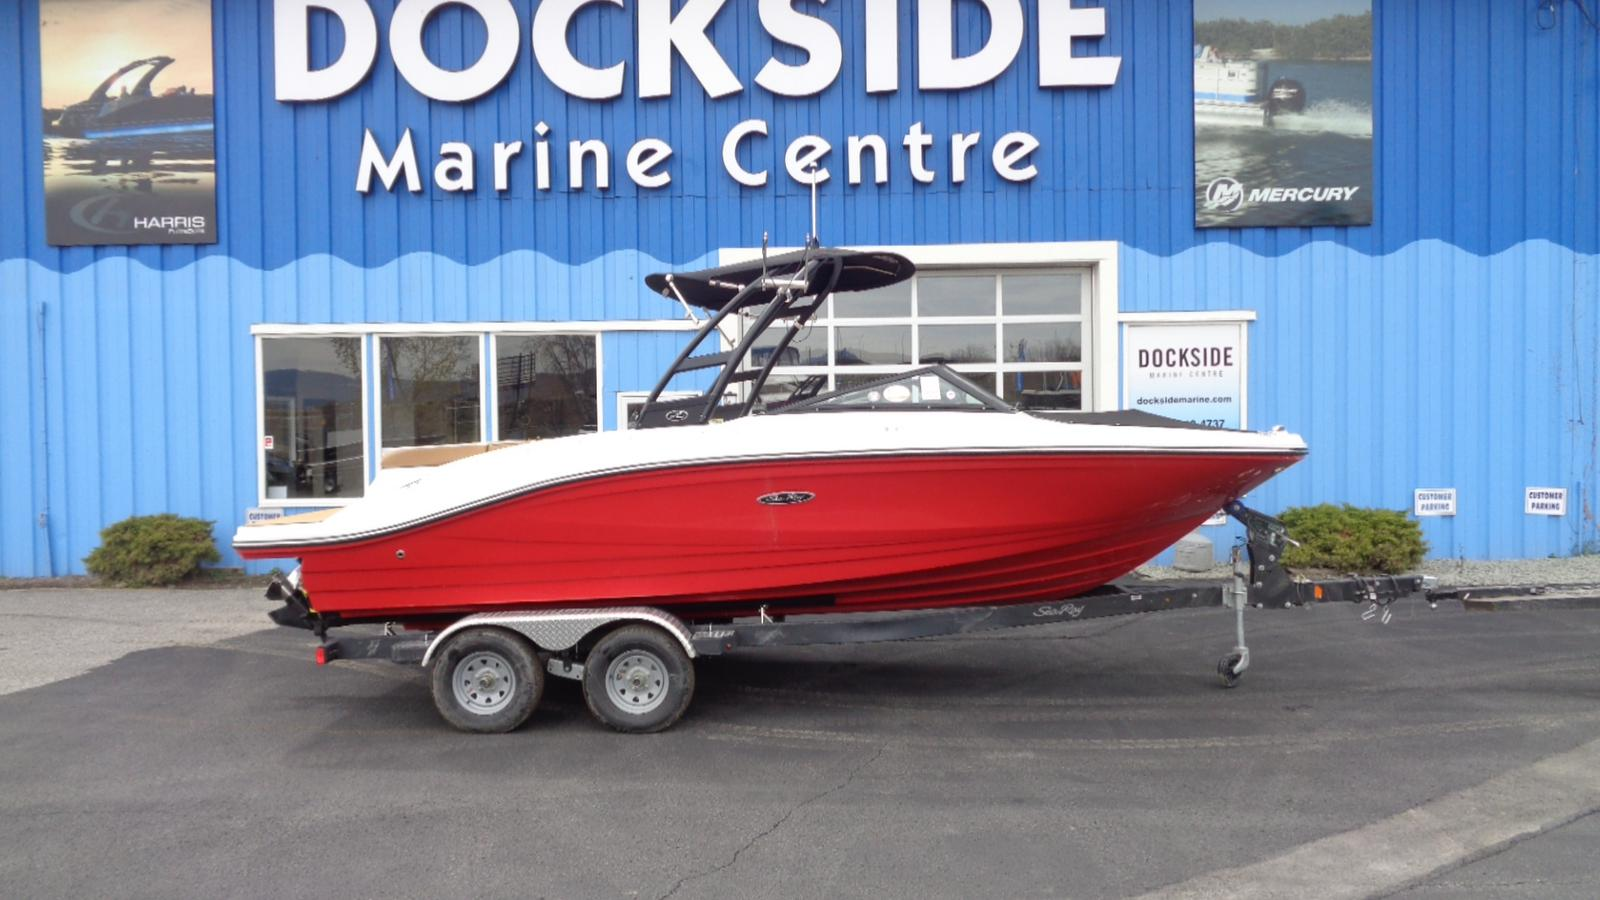 For Sale: 2018 Sea Ray Spx 210 22ft<br/>Dockside Marine Centre, LTD.